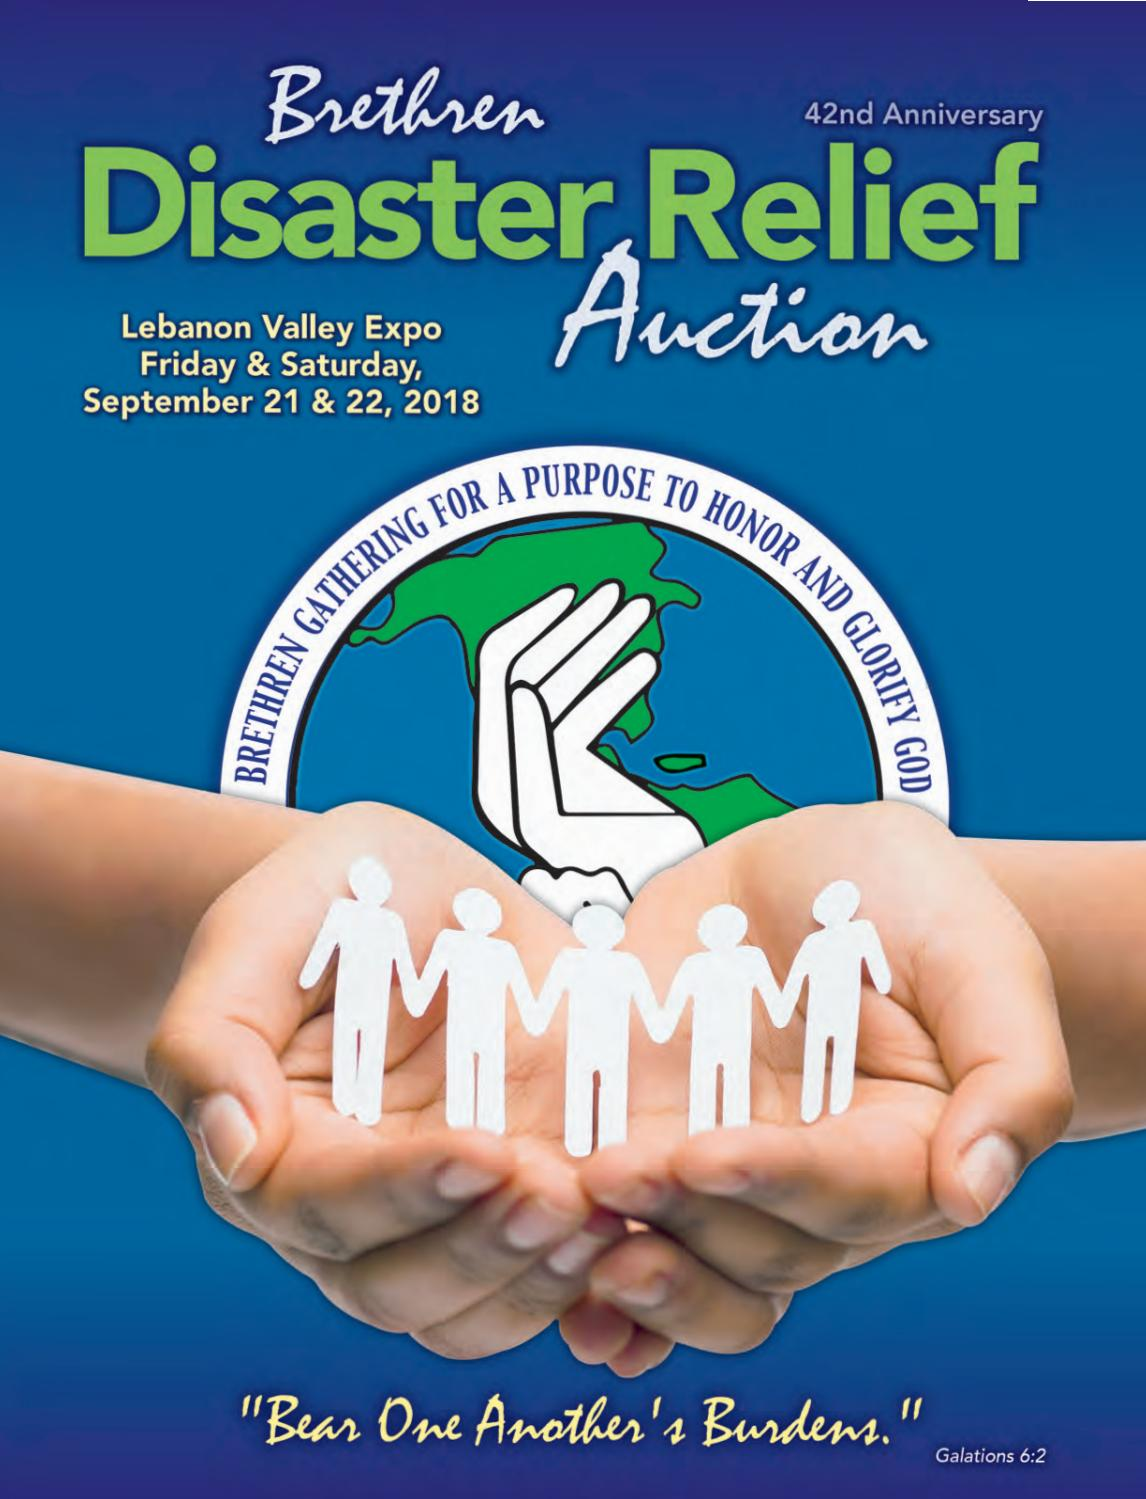 Brethren Disaster Relief Auction 2018